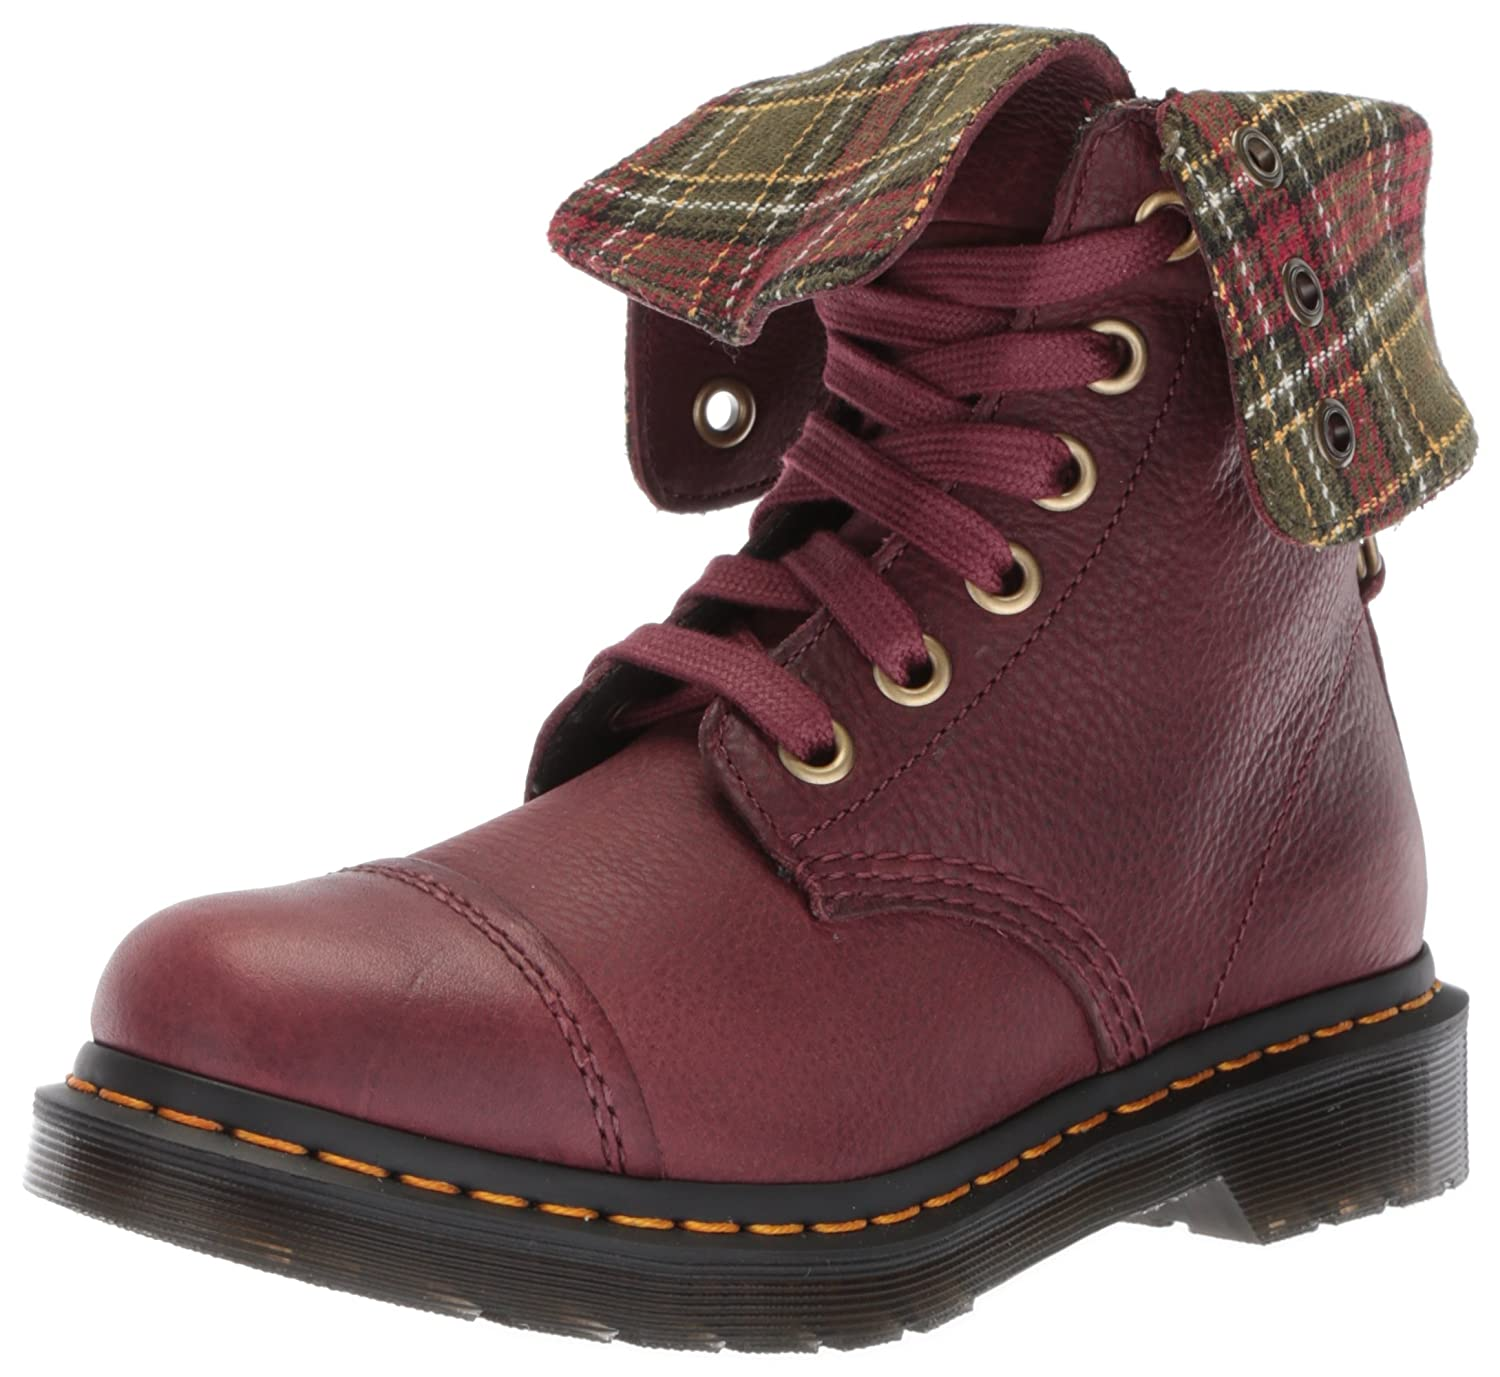 Dr. Martens Women's Aimilita FL Cherry Red Ankle Boot B071YSD7X4 8 Medium UK (10 US)|Cherry Red